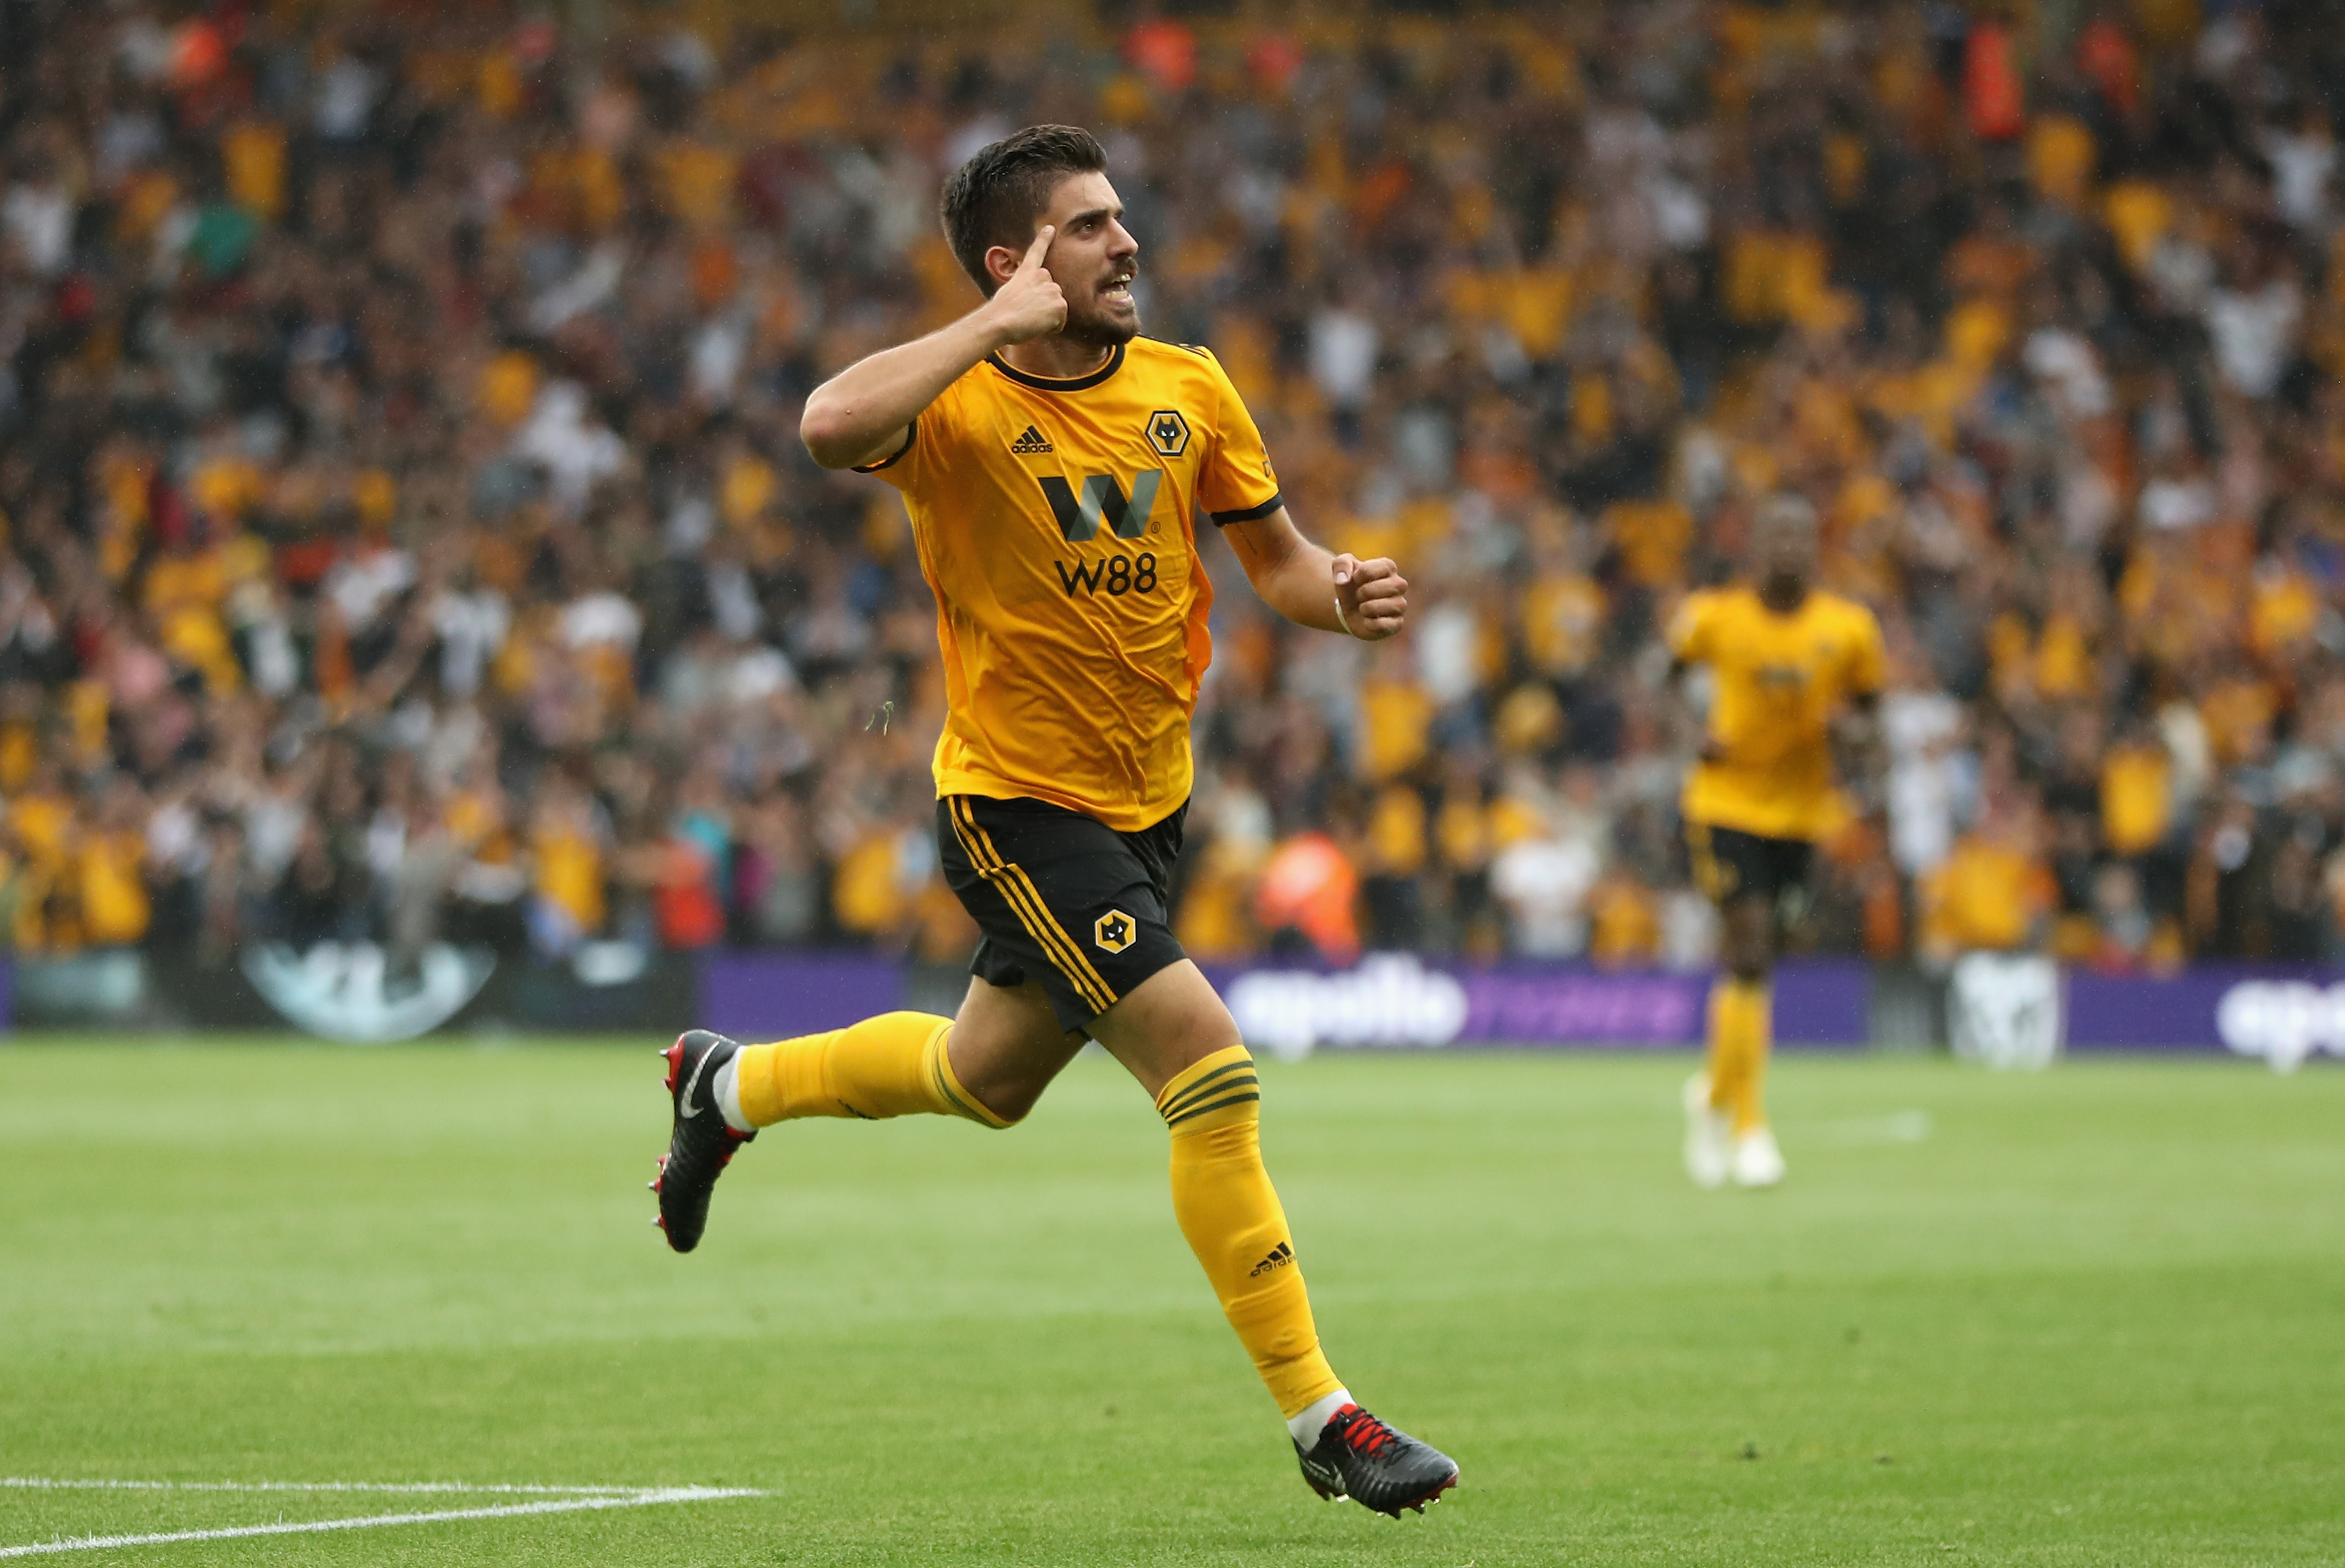 Will Arsenal and Manchester United pay up for Neves? (Photo courtesy - David Rogers/Getty Images)